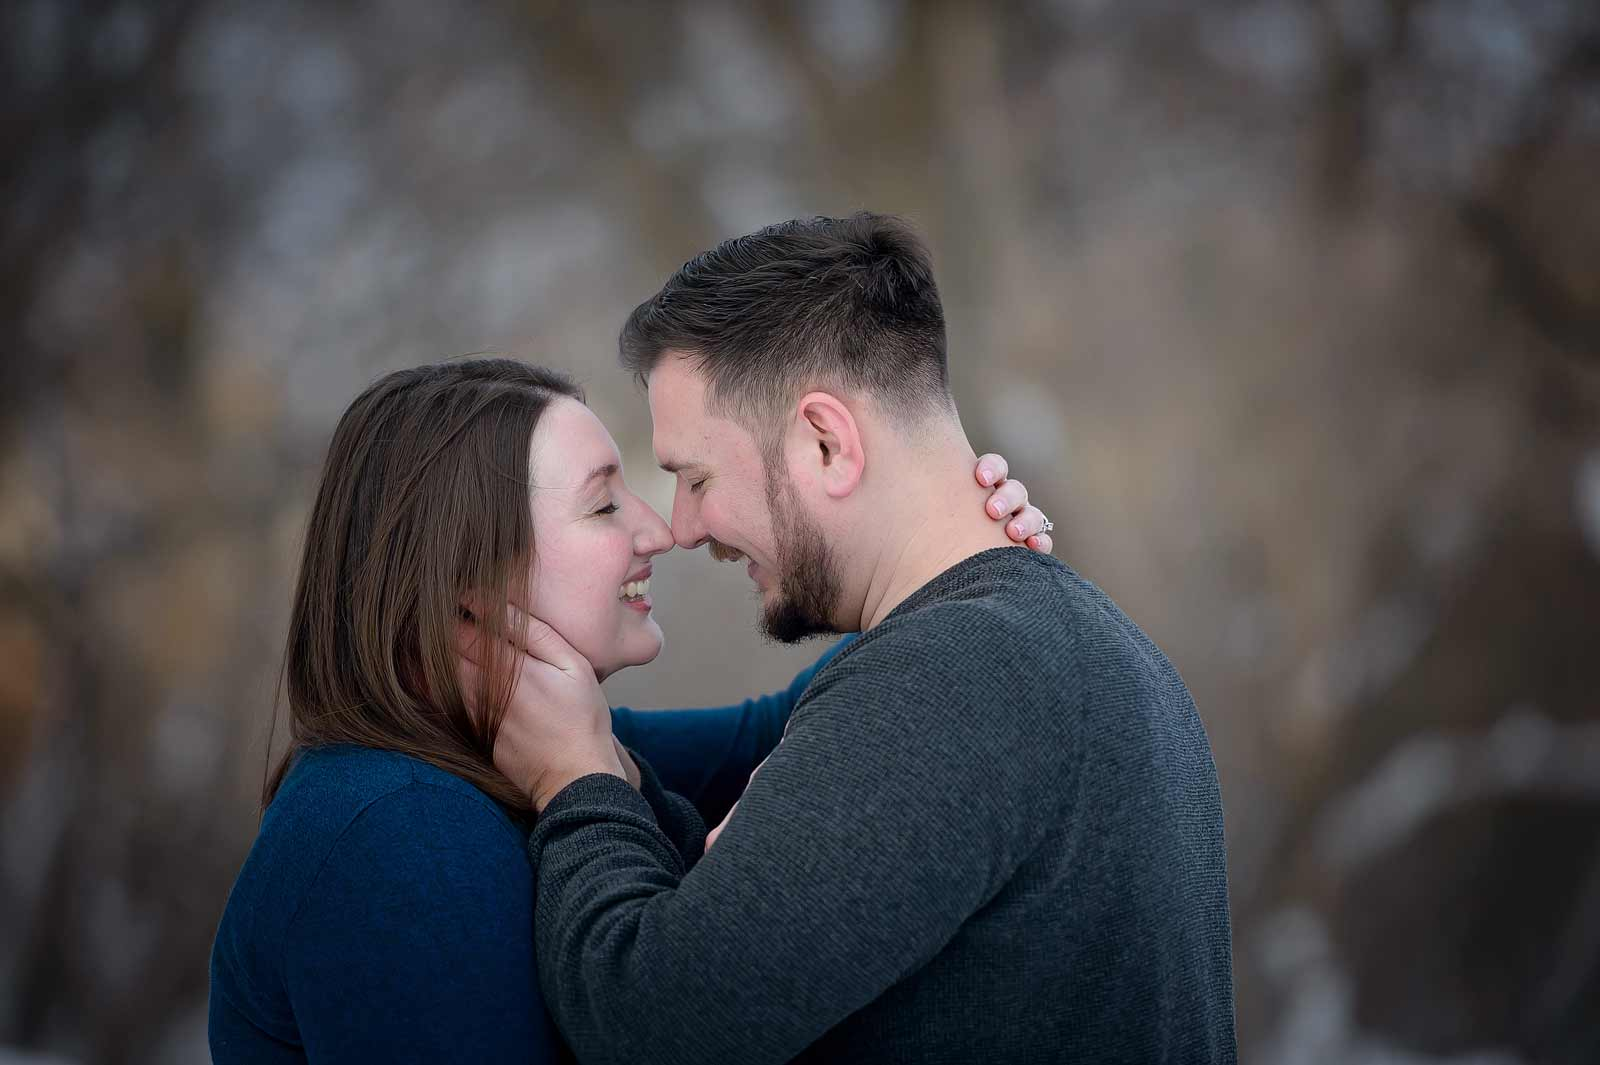 Lauren and Mike's engagement session at Billings Estates in Ottawa having a loving romantic embrace